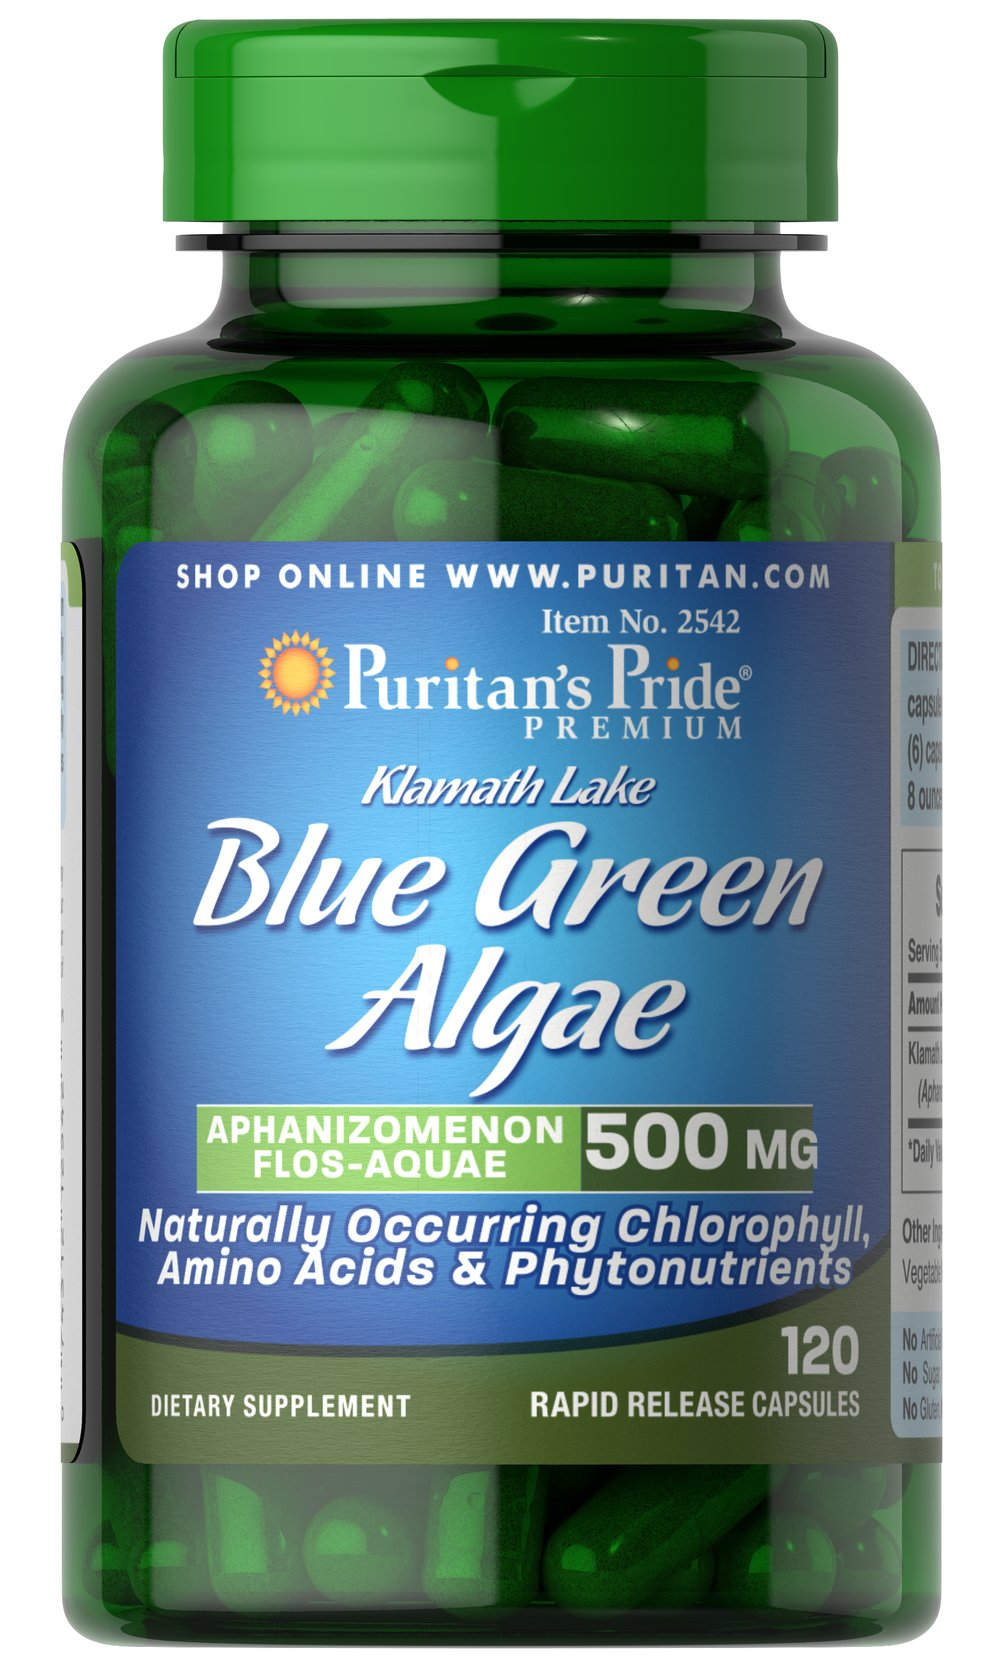 Klamath Lake Blue Green Algae 500 mg Klamath Lake Blue Green Algae grows naturally in the deep waters of Klamath Lake in Southern Oregon. It is one of only a few wildcrafted supplements available for consumption.  This extraordinary algae contains many phytonutrients, as well as chlorophyll, carotenoids, polyunsaturated fatty acids and the blue-green pigment called phycocyanin, which has been researched for its antioxidant and immune support properties.** 120 Capsules 500 mg $42.99